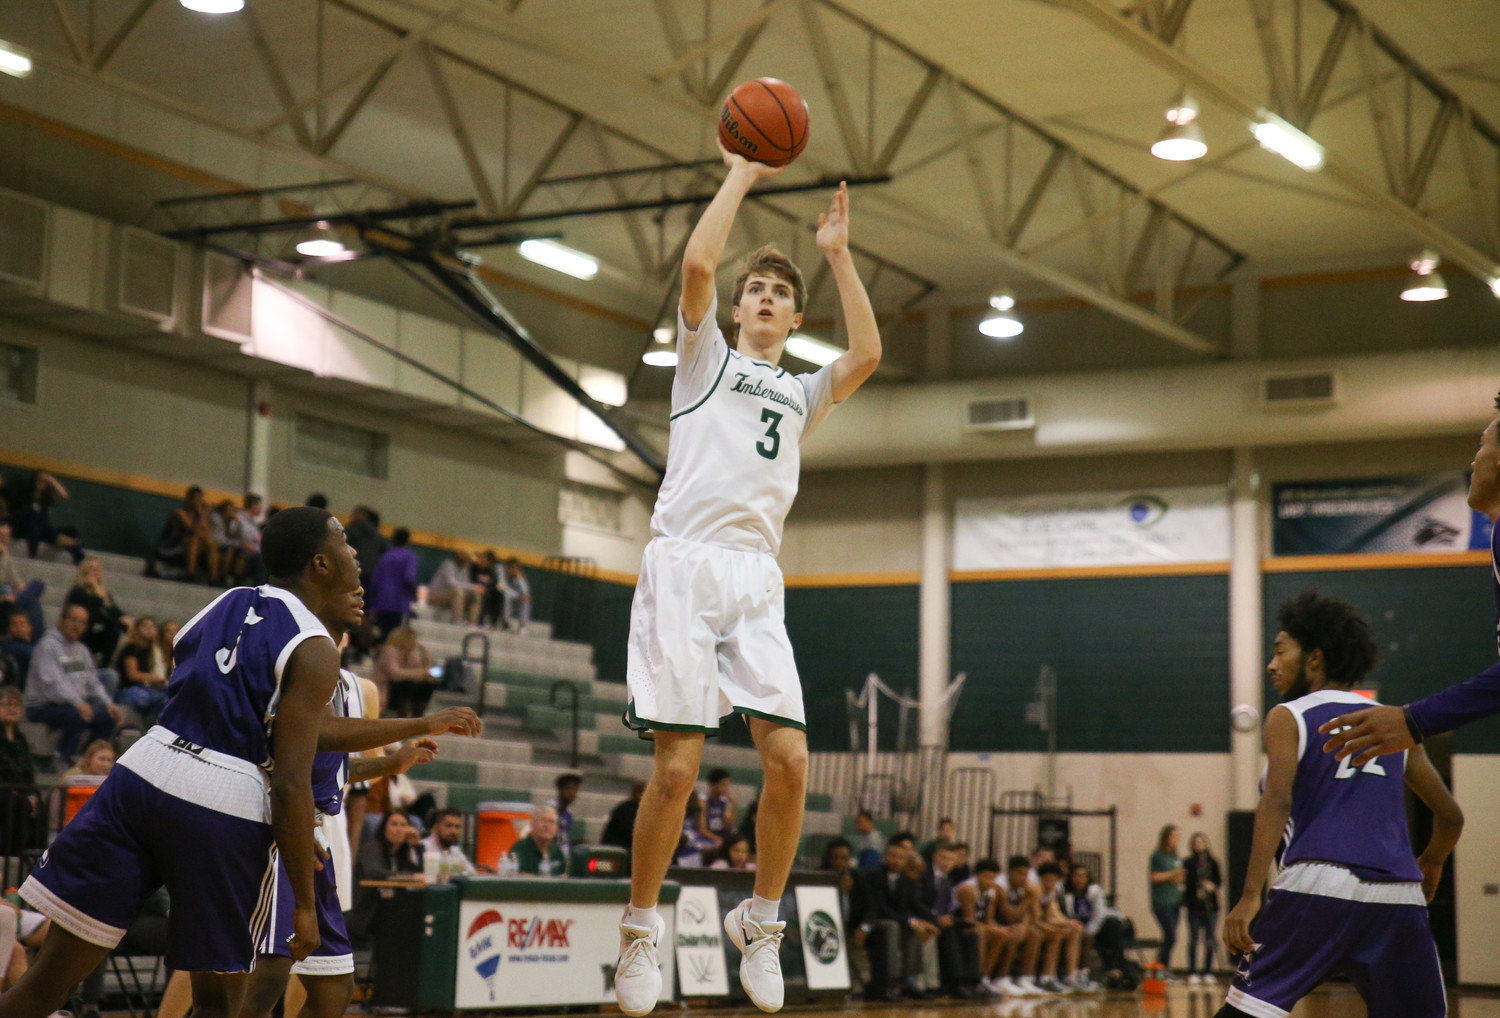 Cedar Park Timberwolves senior small forward Eric Weeks (3) shoots a jump shot during a high school basketball game between the Cedar Park Timberwolves and the Elgin Wildcats at Cedar Park High School in Cedar Park, Texas on January 12, 2018.